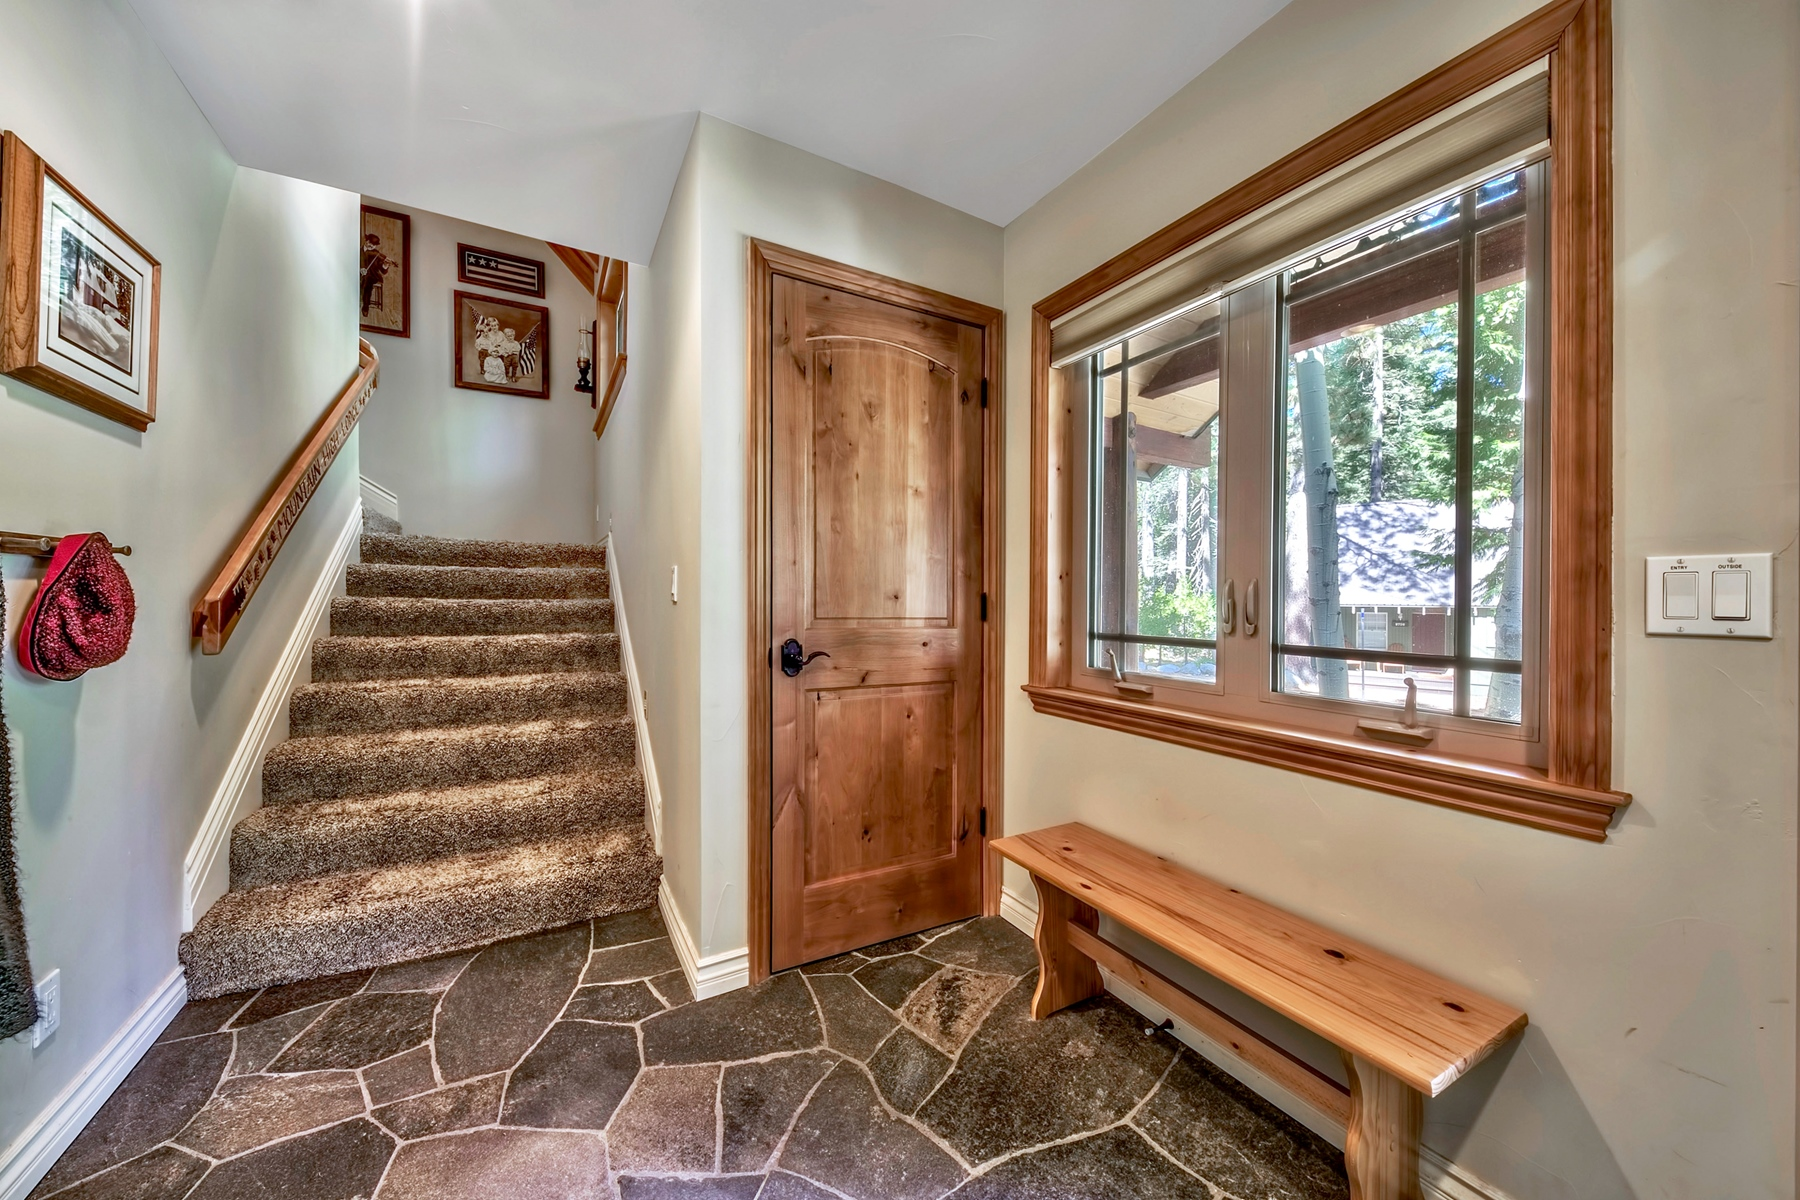 Additional photo for property listing at 8747 Victoria Circle, Tahoma, CA 96142 8747 Victoria Circle Tahoma, California 96142 United States